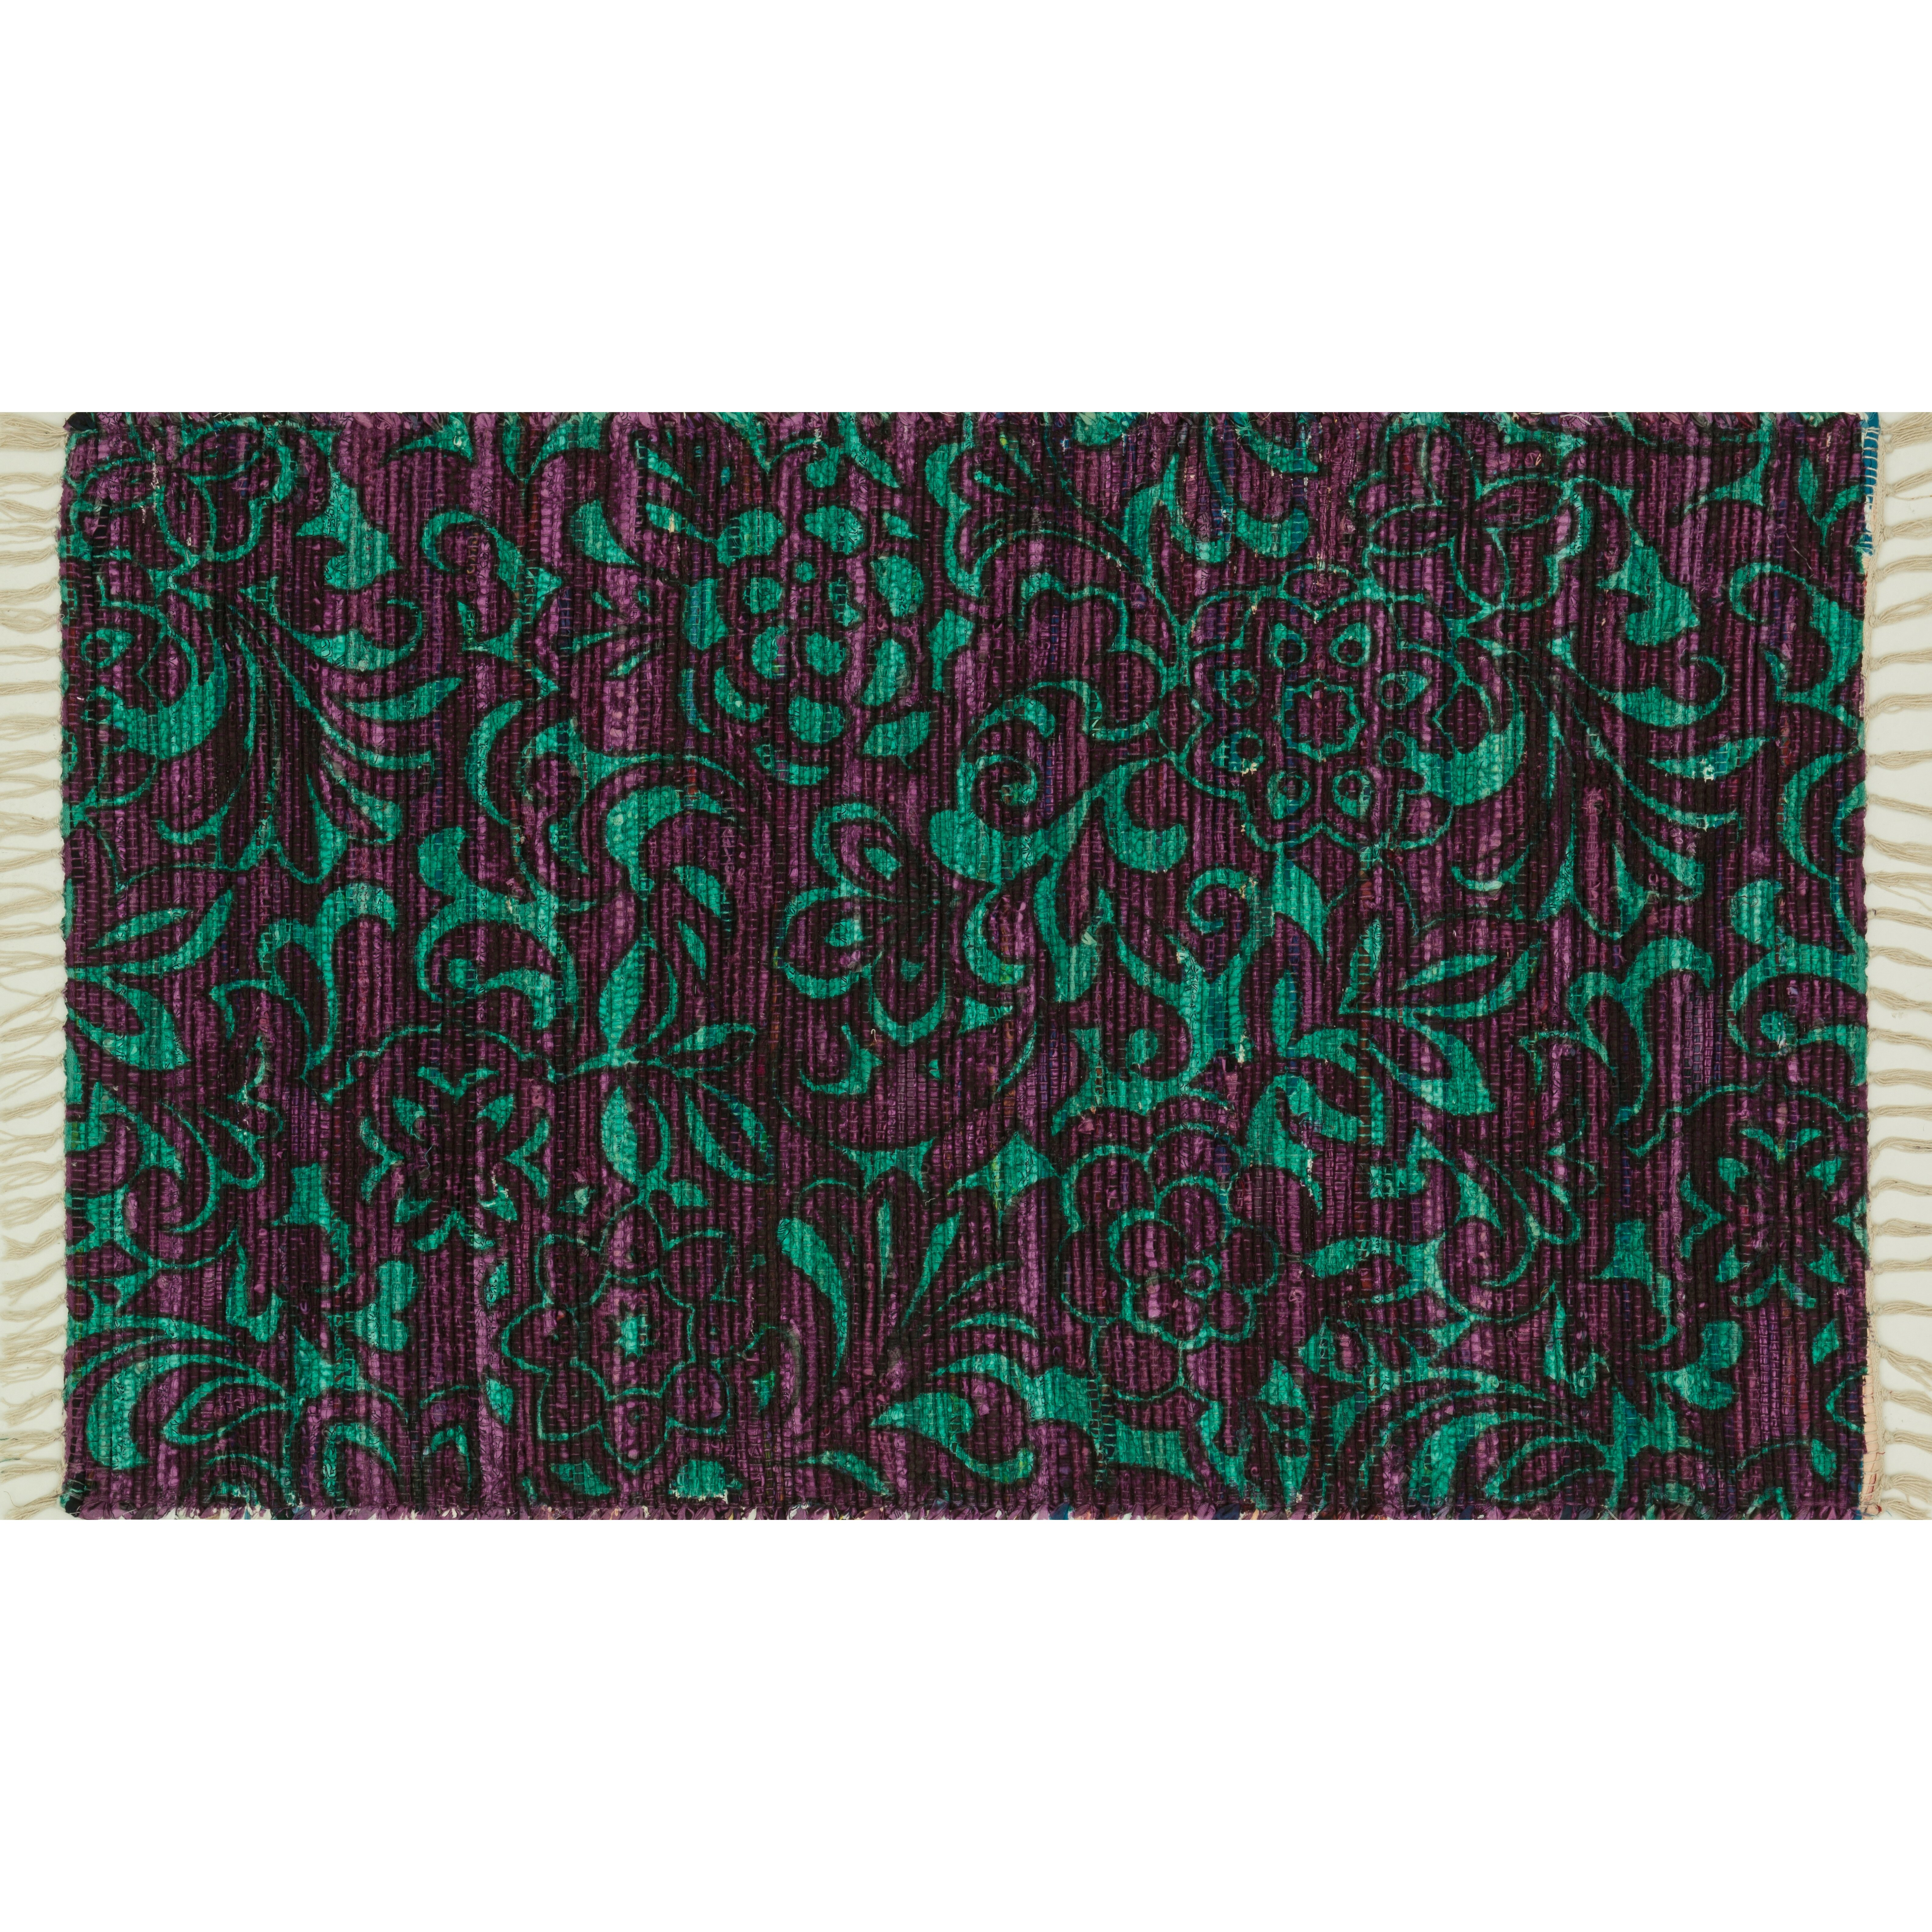 Purple Turquoise Rag Rug: The Conestoga Trading Co. Purple/Turquoise Area Rug